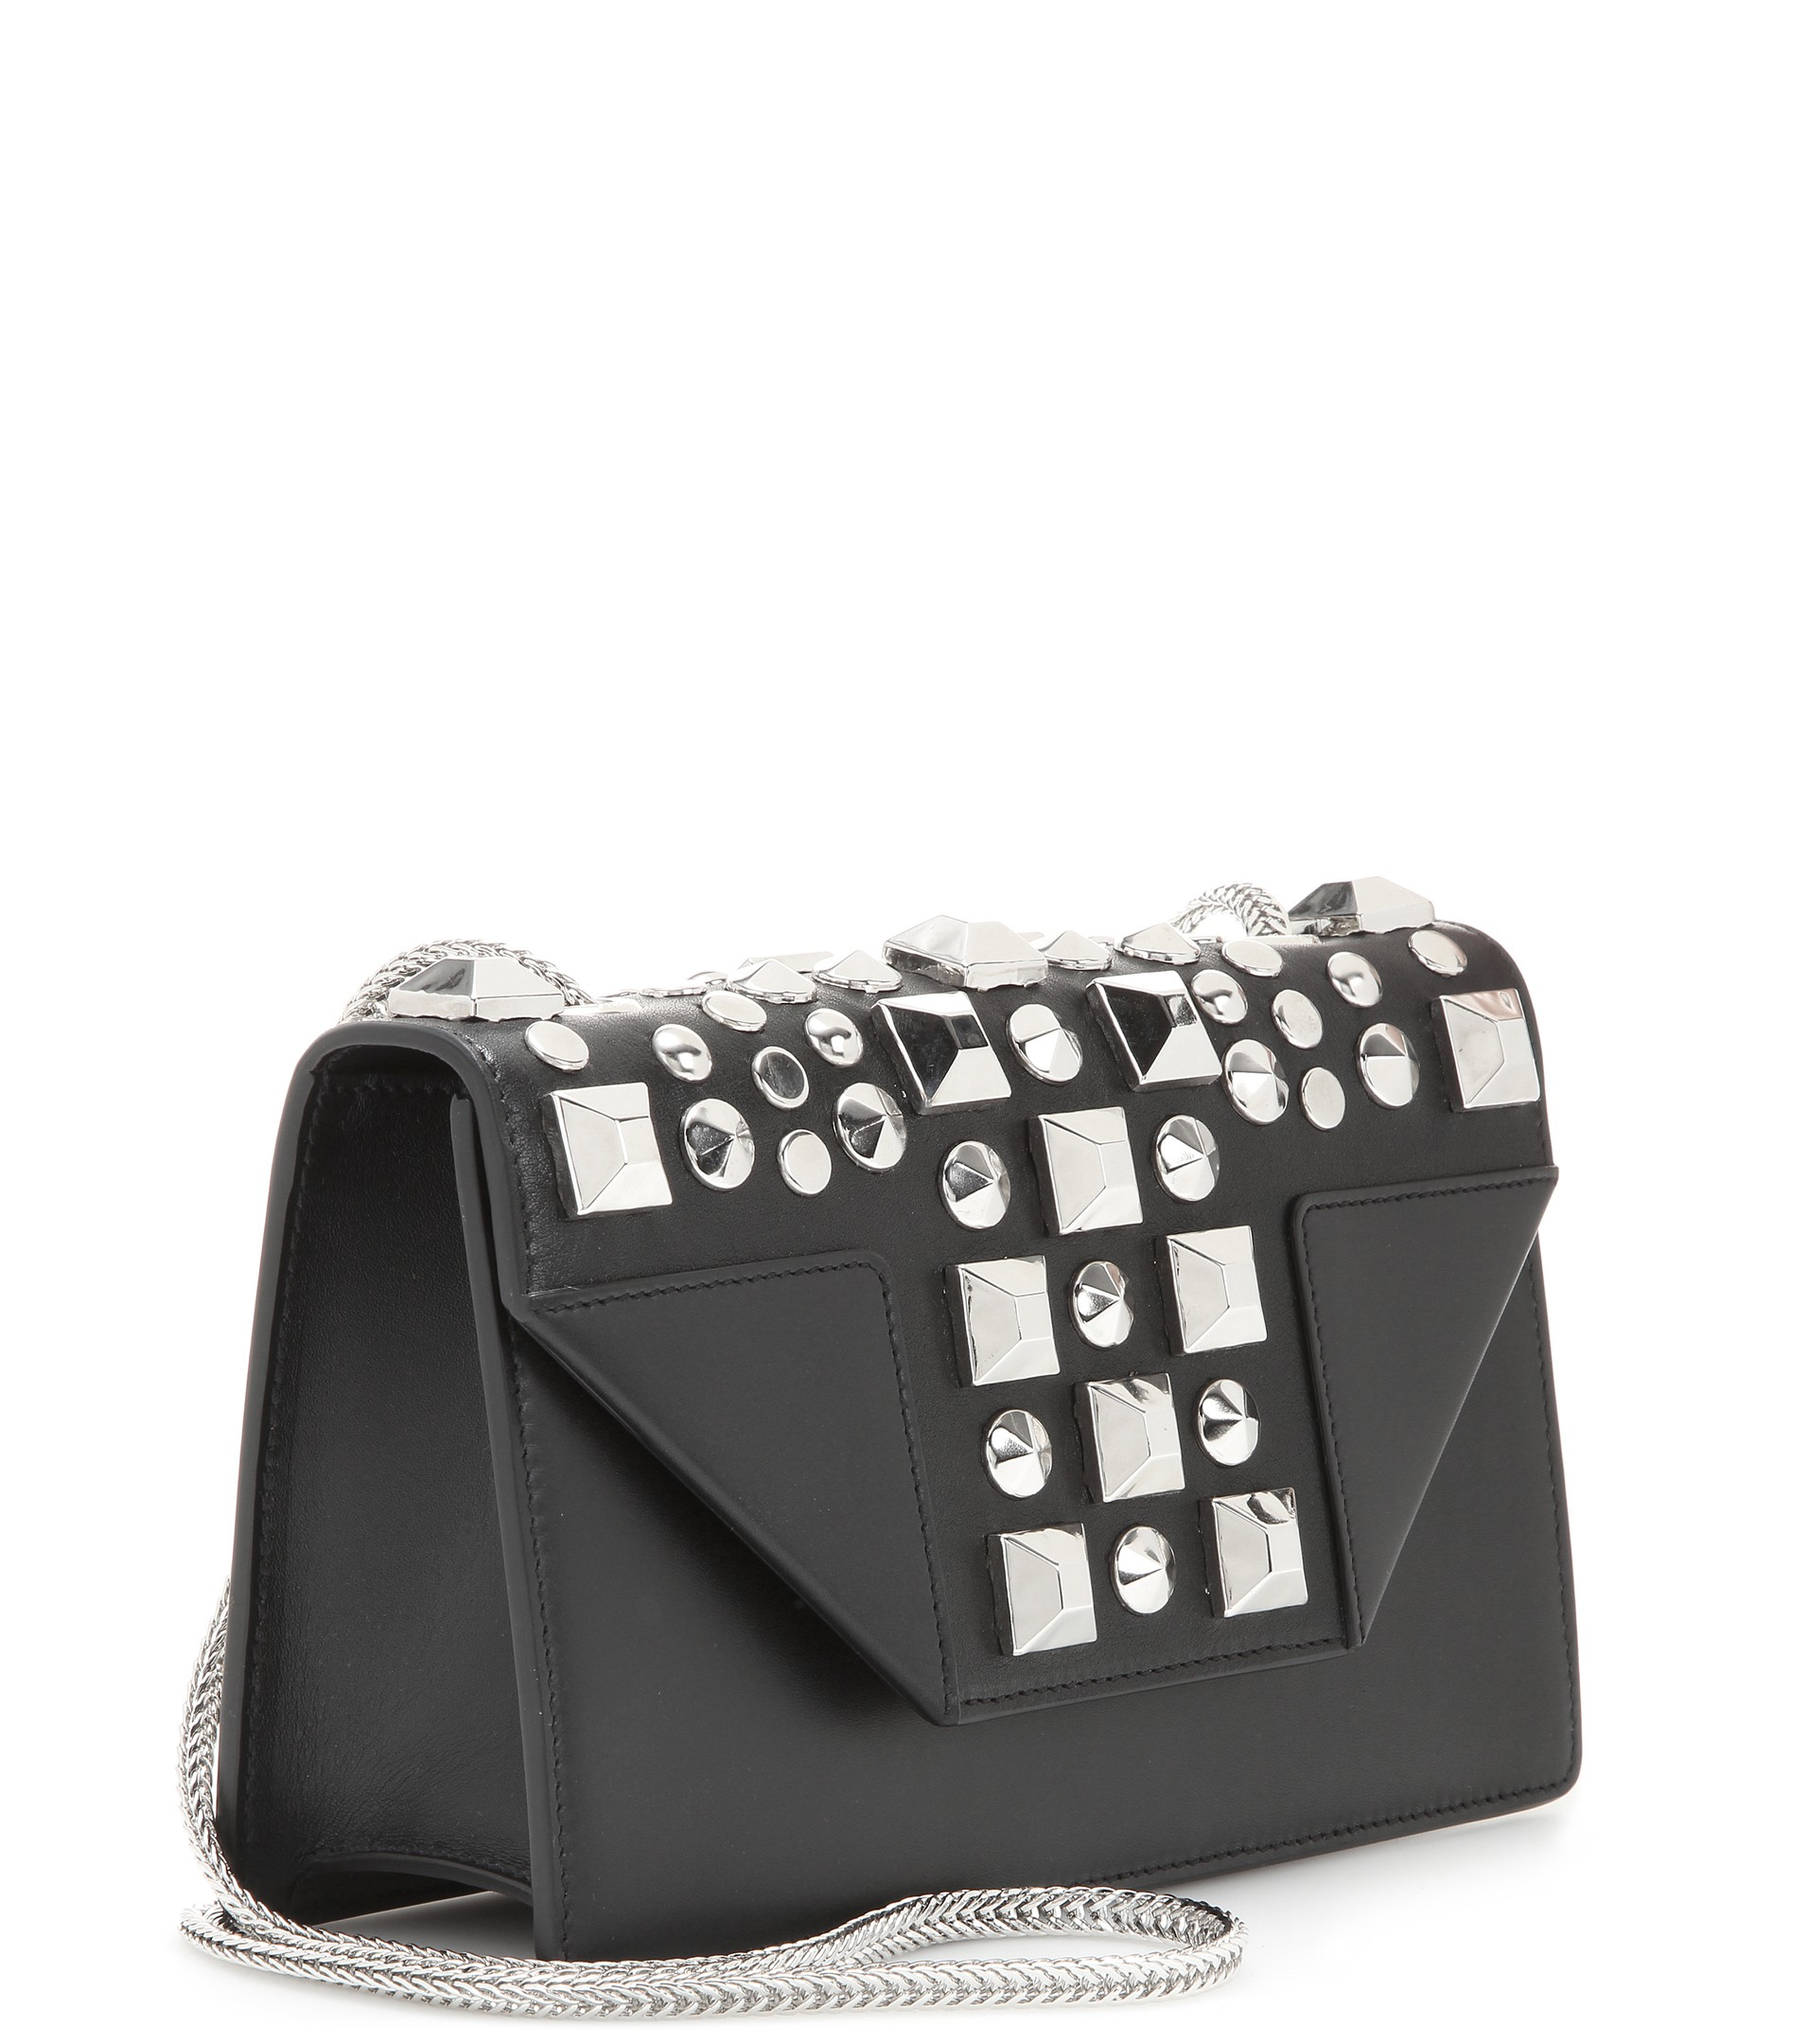 tags for handbags - classic small betty bag in black suede and leather